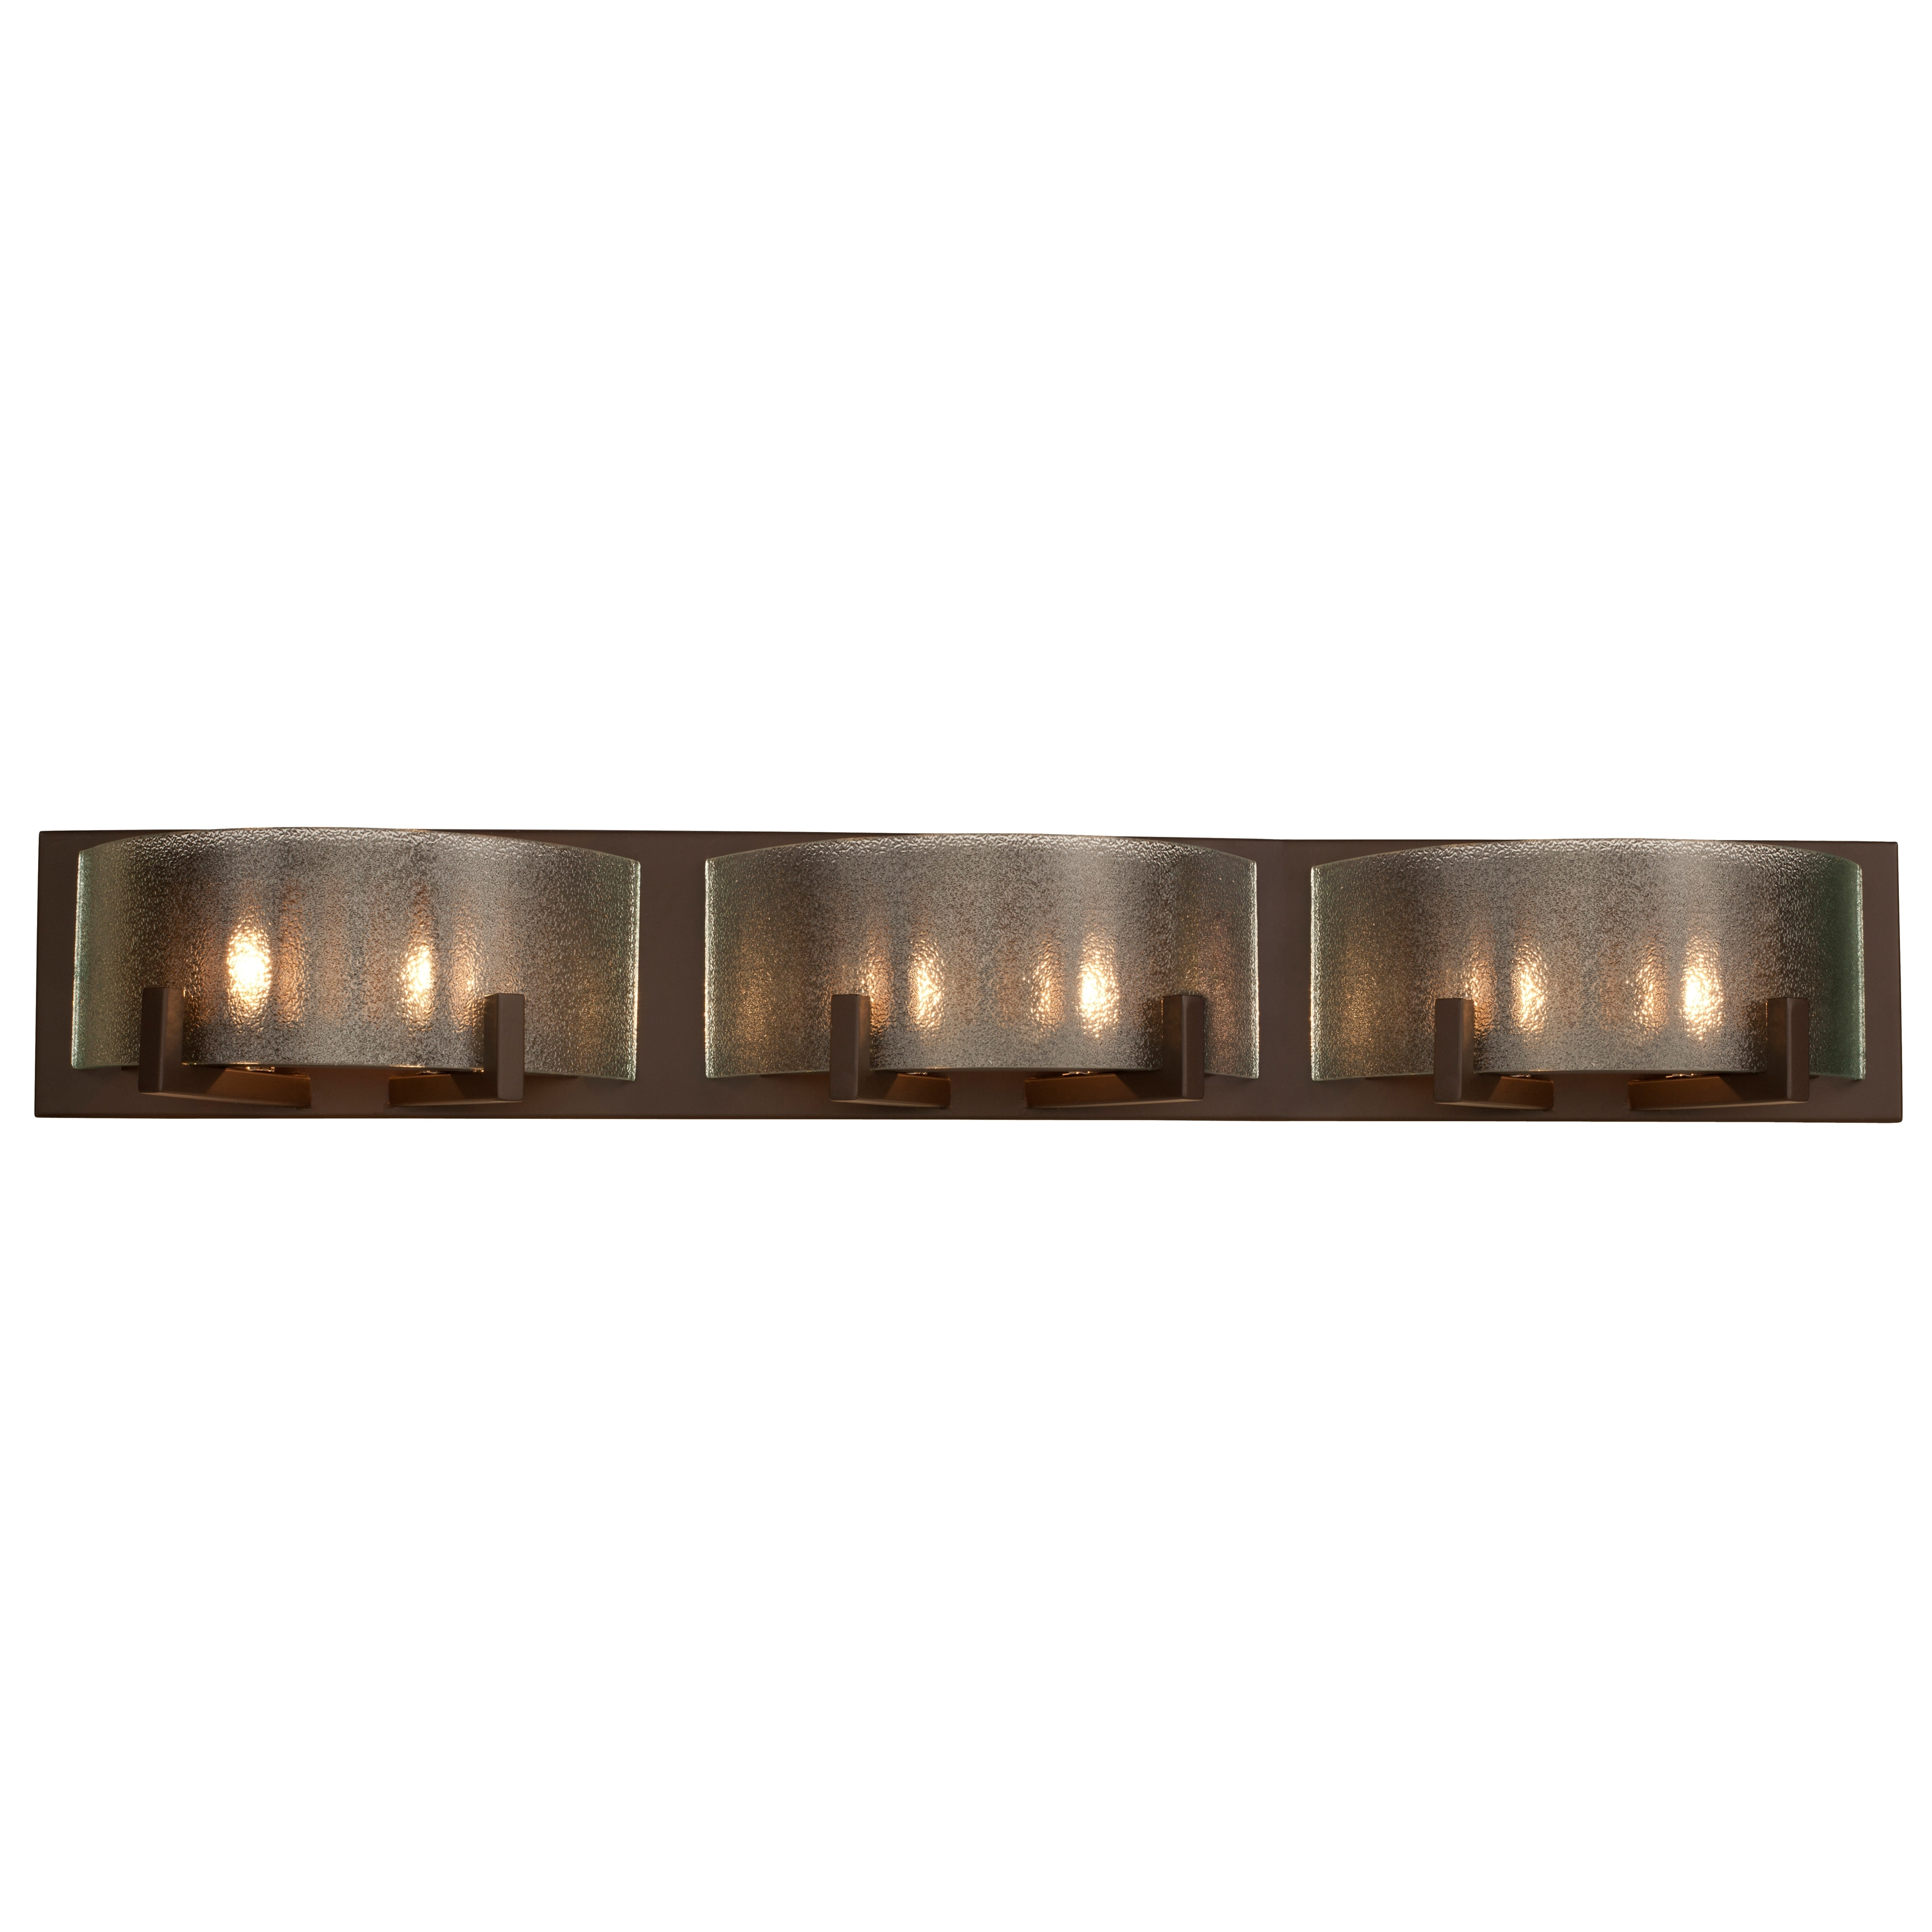 Rogue Decor Firefly 6 Light Bath Fixture Free Shipping Today 7213011